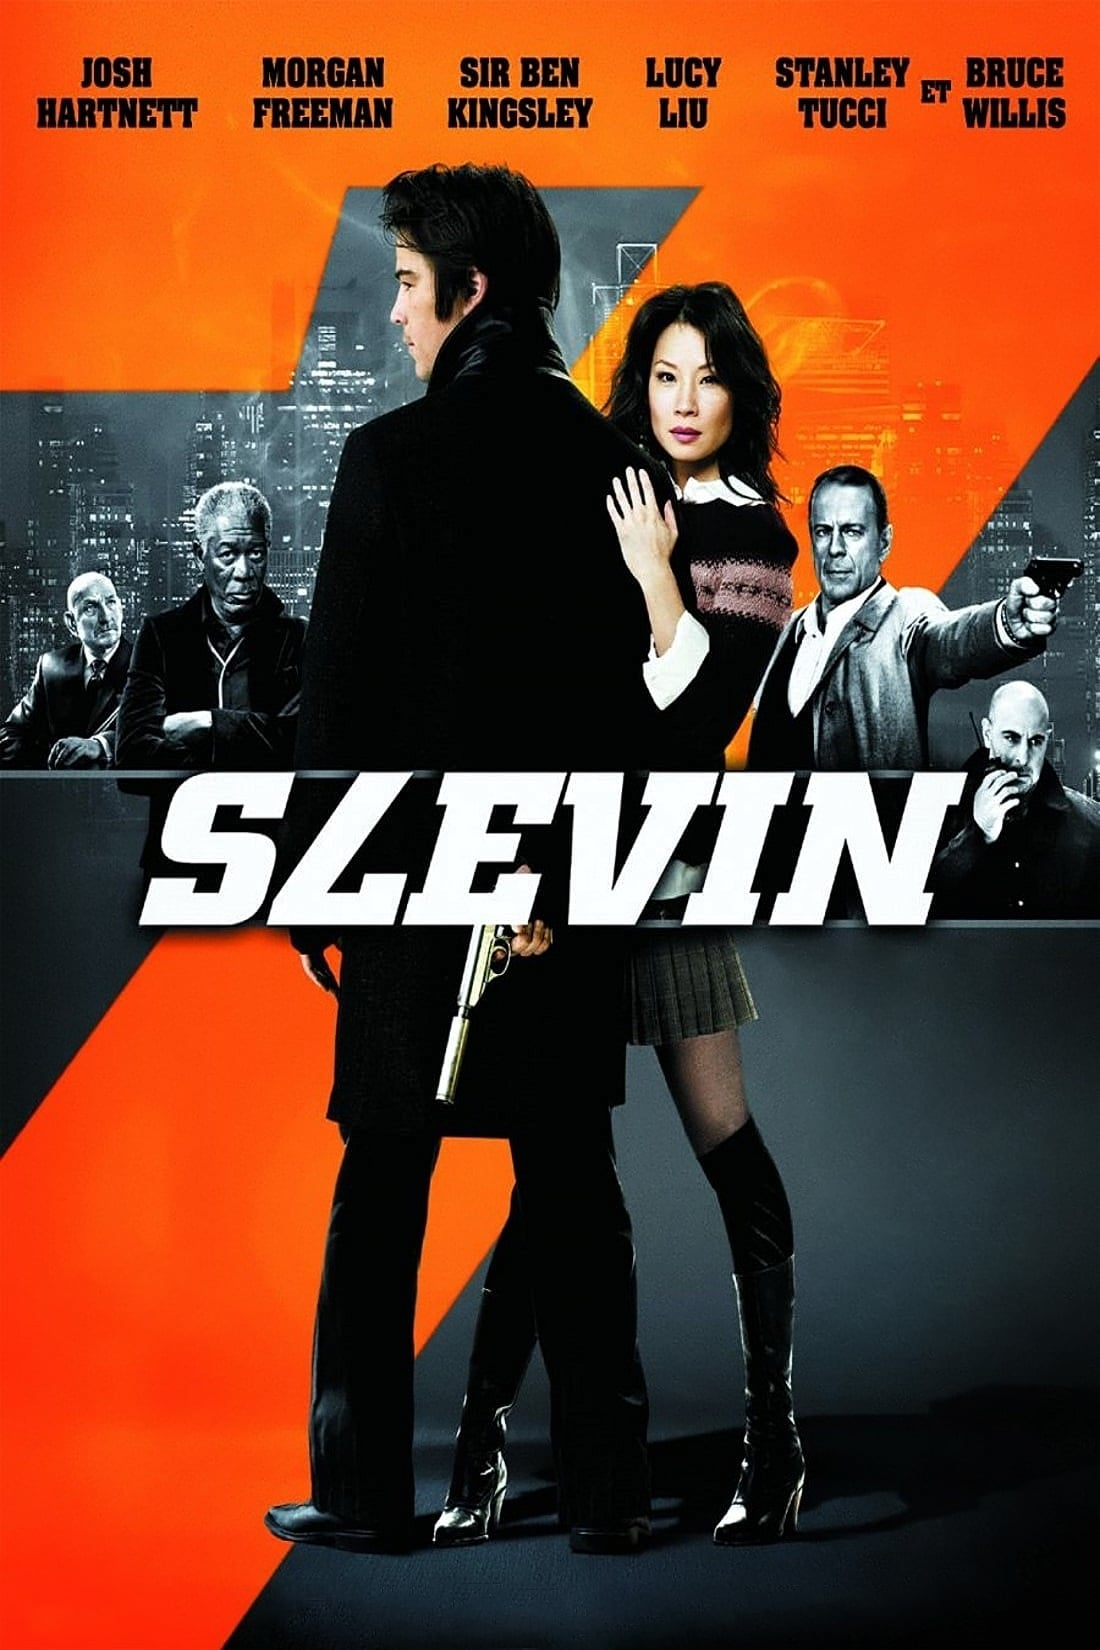 voir film Slevin streaming